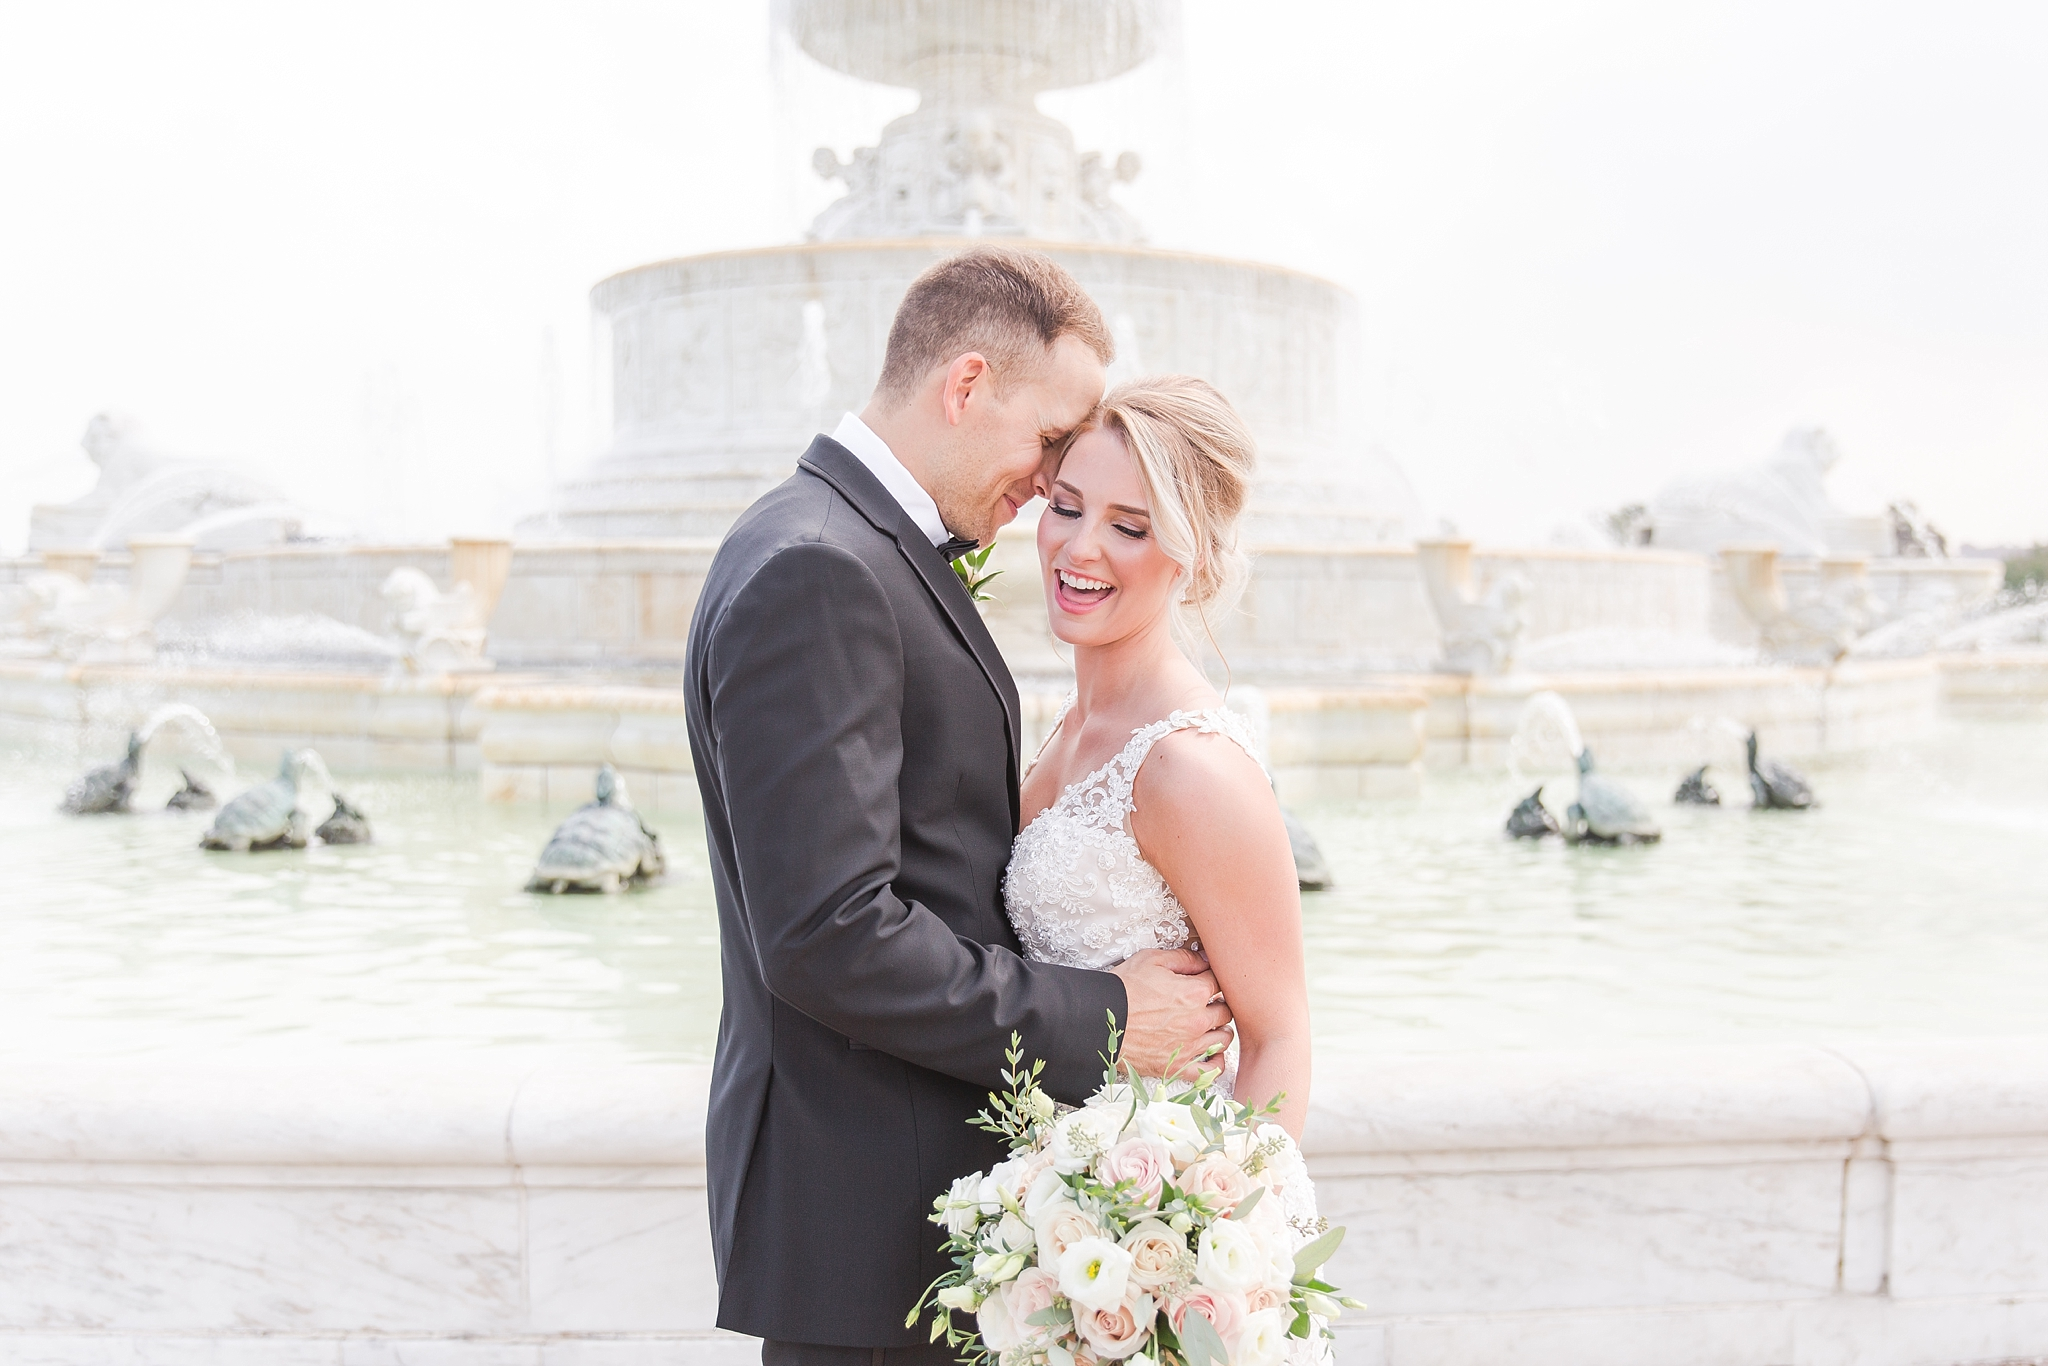 candid-romantic-wedding-photos-at-the-masonic-temple-belle-isle-detroit-institute-of-arts-in-detroit-michigan-by-courtney-carolyn-photography_0049.jpg